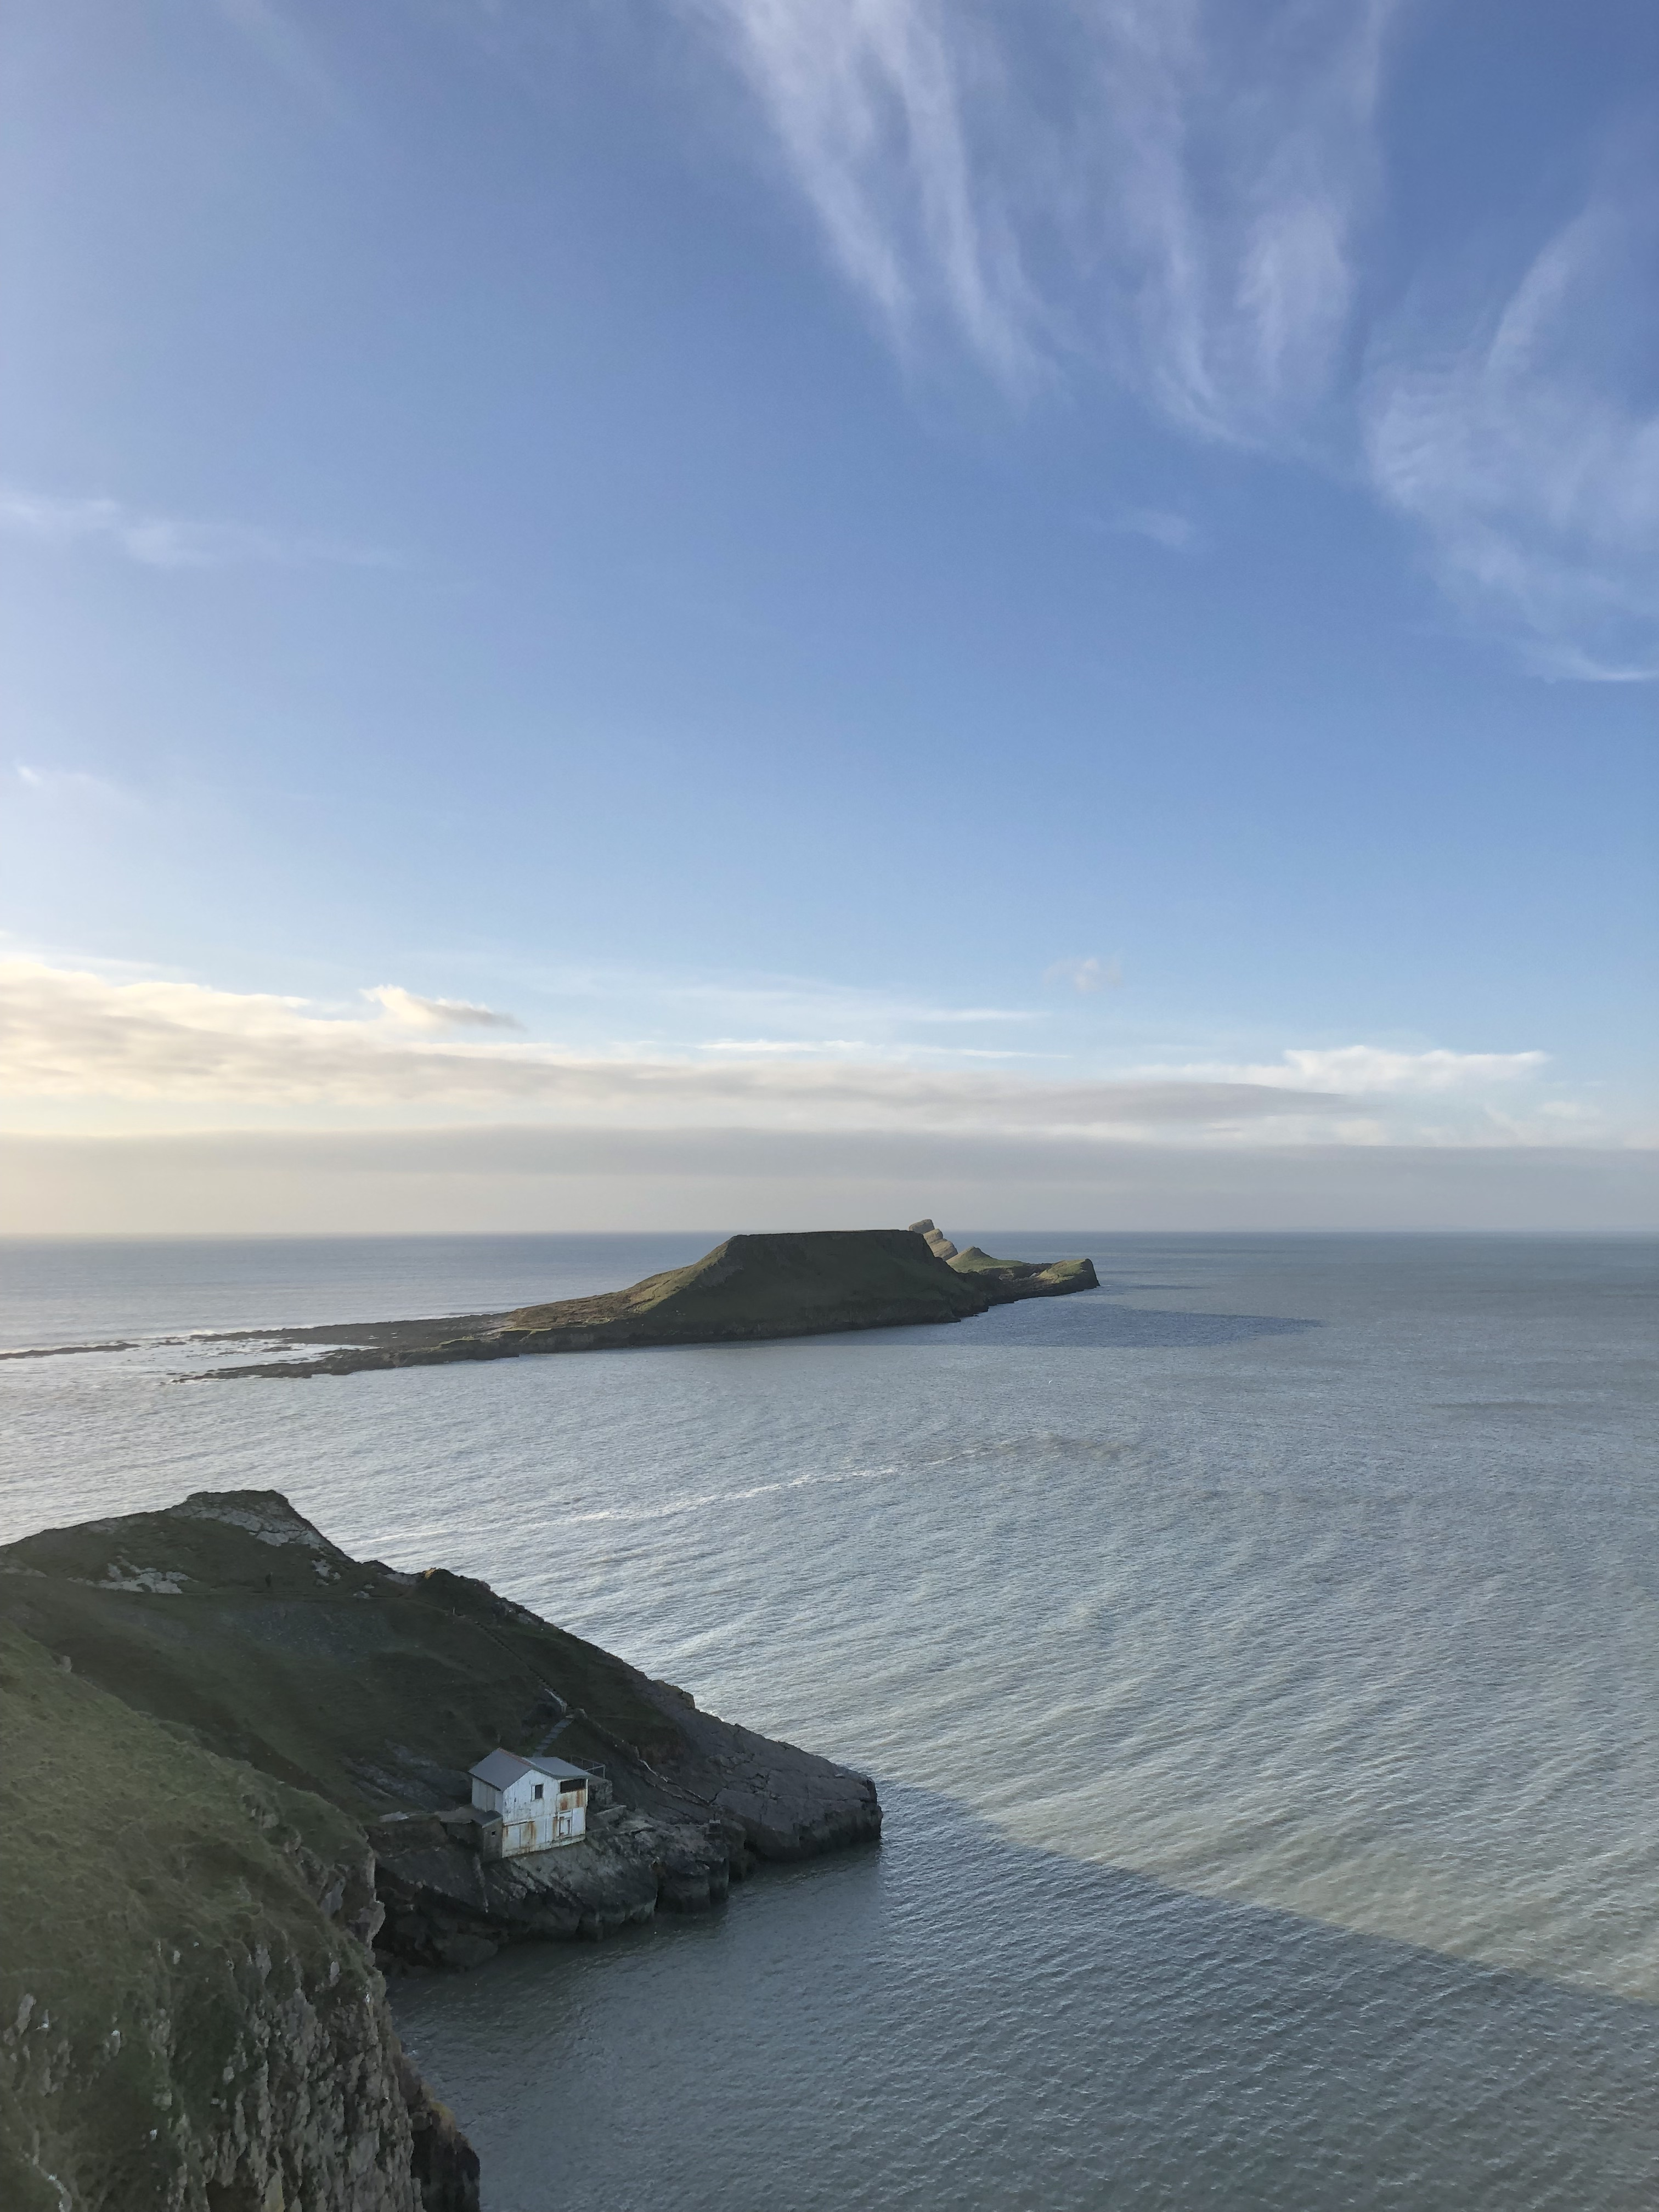 Worms Head: The Gower Peninsula, Wales